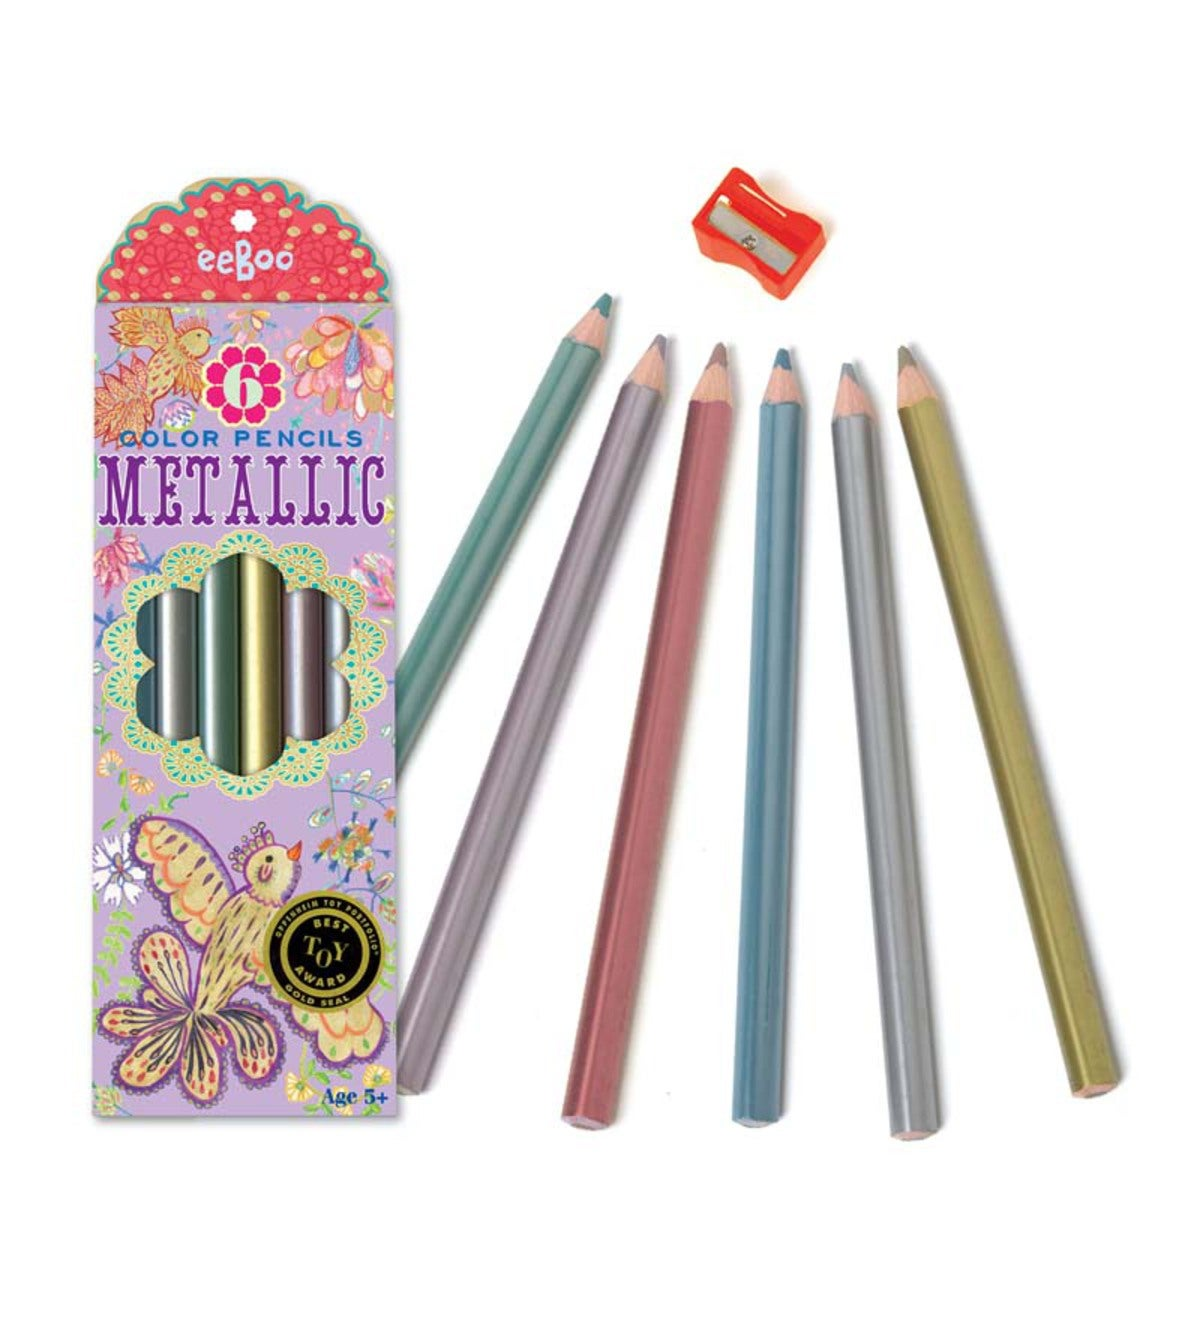 Bird Metallic Pencils, Set of 6